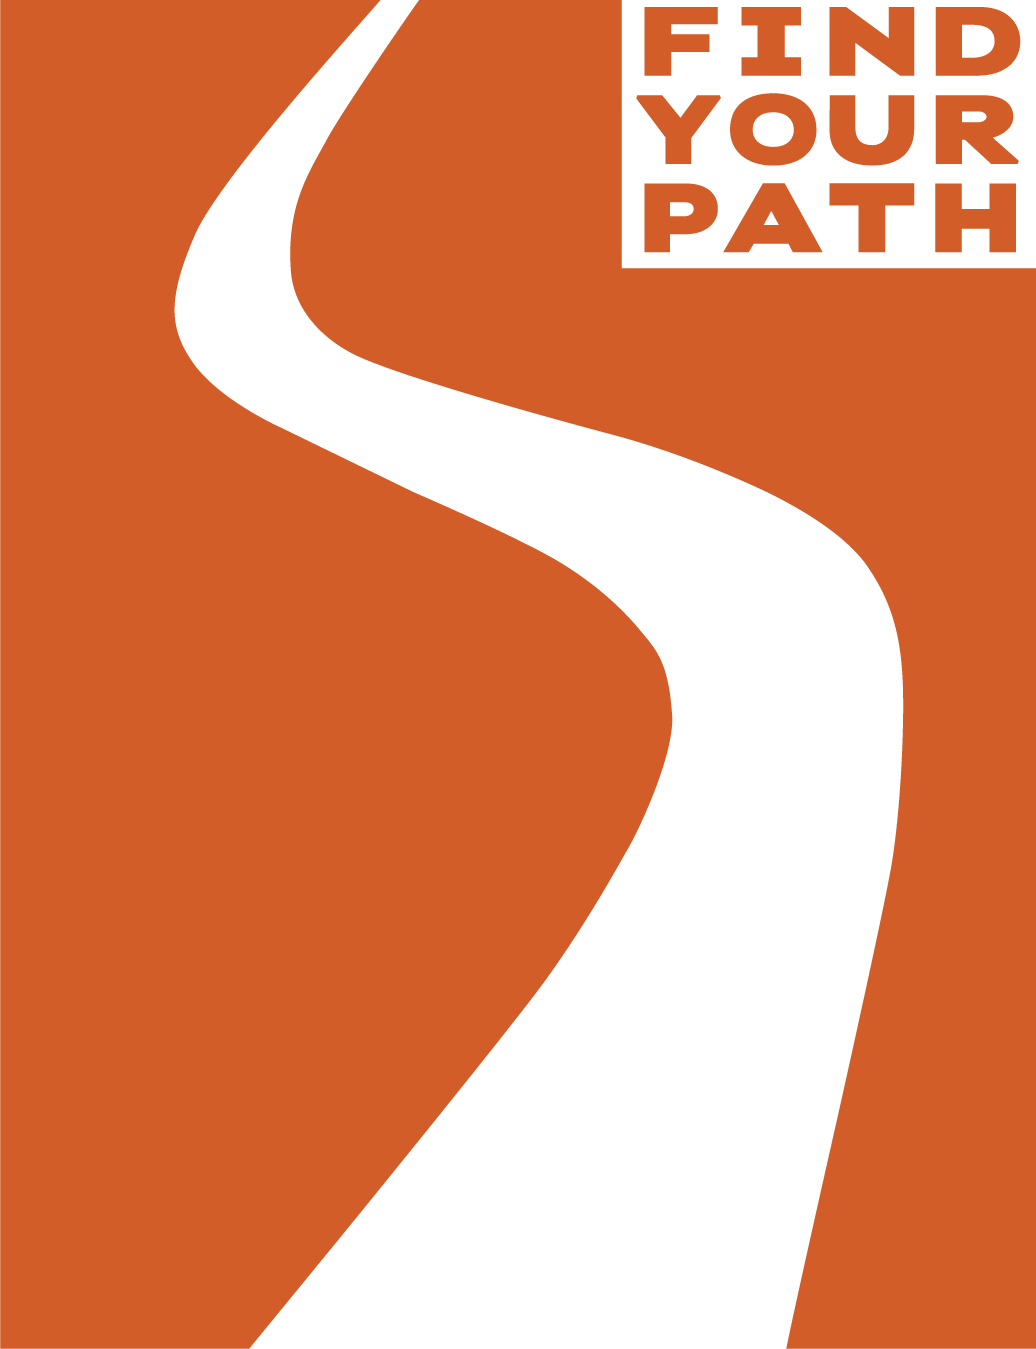 Find Your Path Image